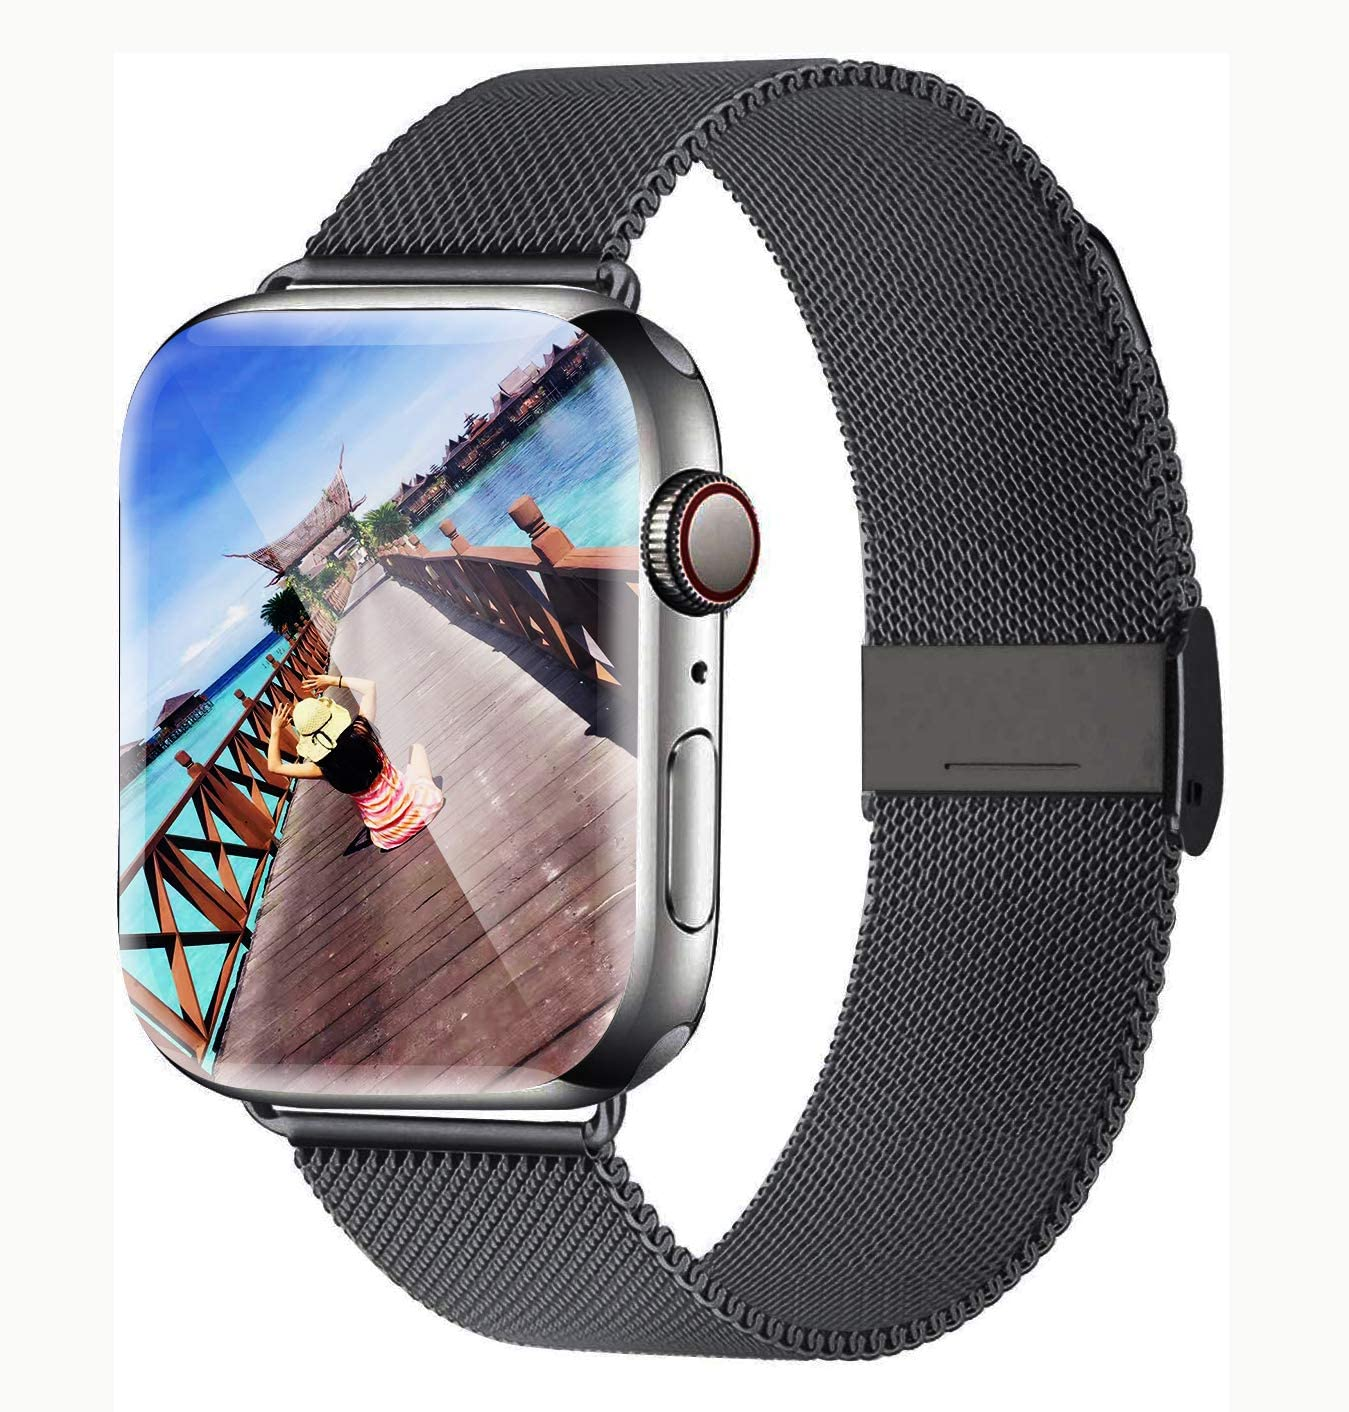 Yaber Stainless Steel Mesh Replacement Band Compatible for Aple Watch 38 mm 40mm 42 mm 44mm Series 6/SE/5/4/3/2/1 (Space Gray, 42MM/44MM)